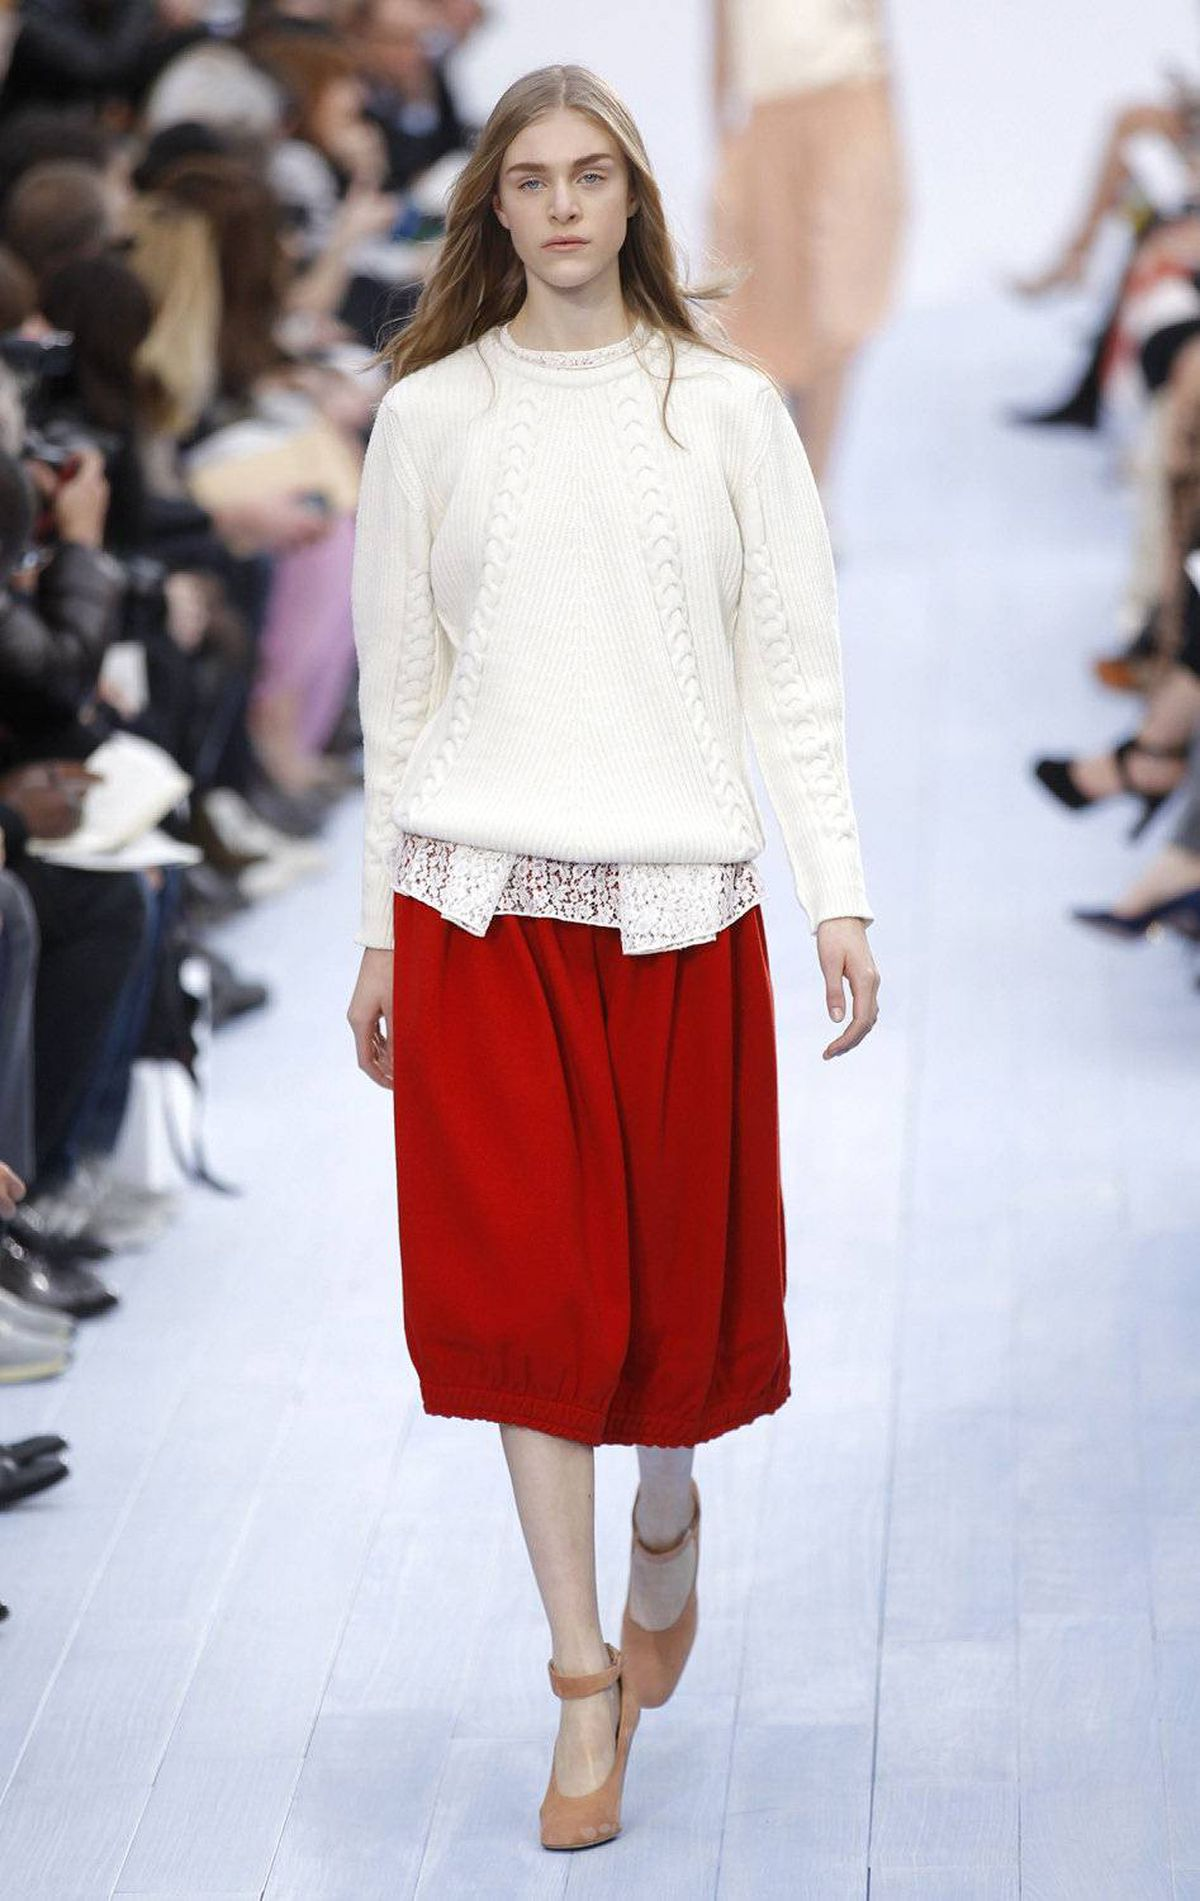 Styling can make all the difference between originality and been-there-designed-that. Here, the folded lace tails poking out of this sweater, with its judiciously applied cable tracks, is understated perfection. Add the crimson red skirt and hello easy dressing, 2012.